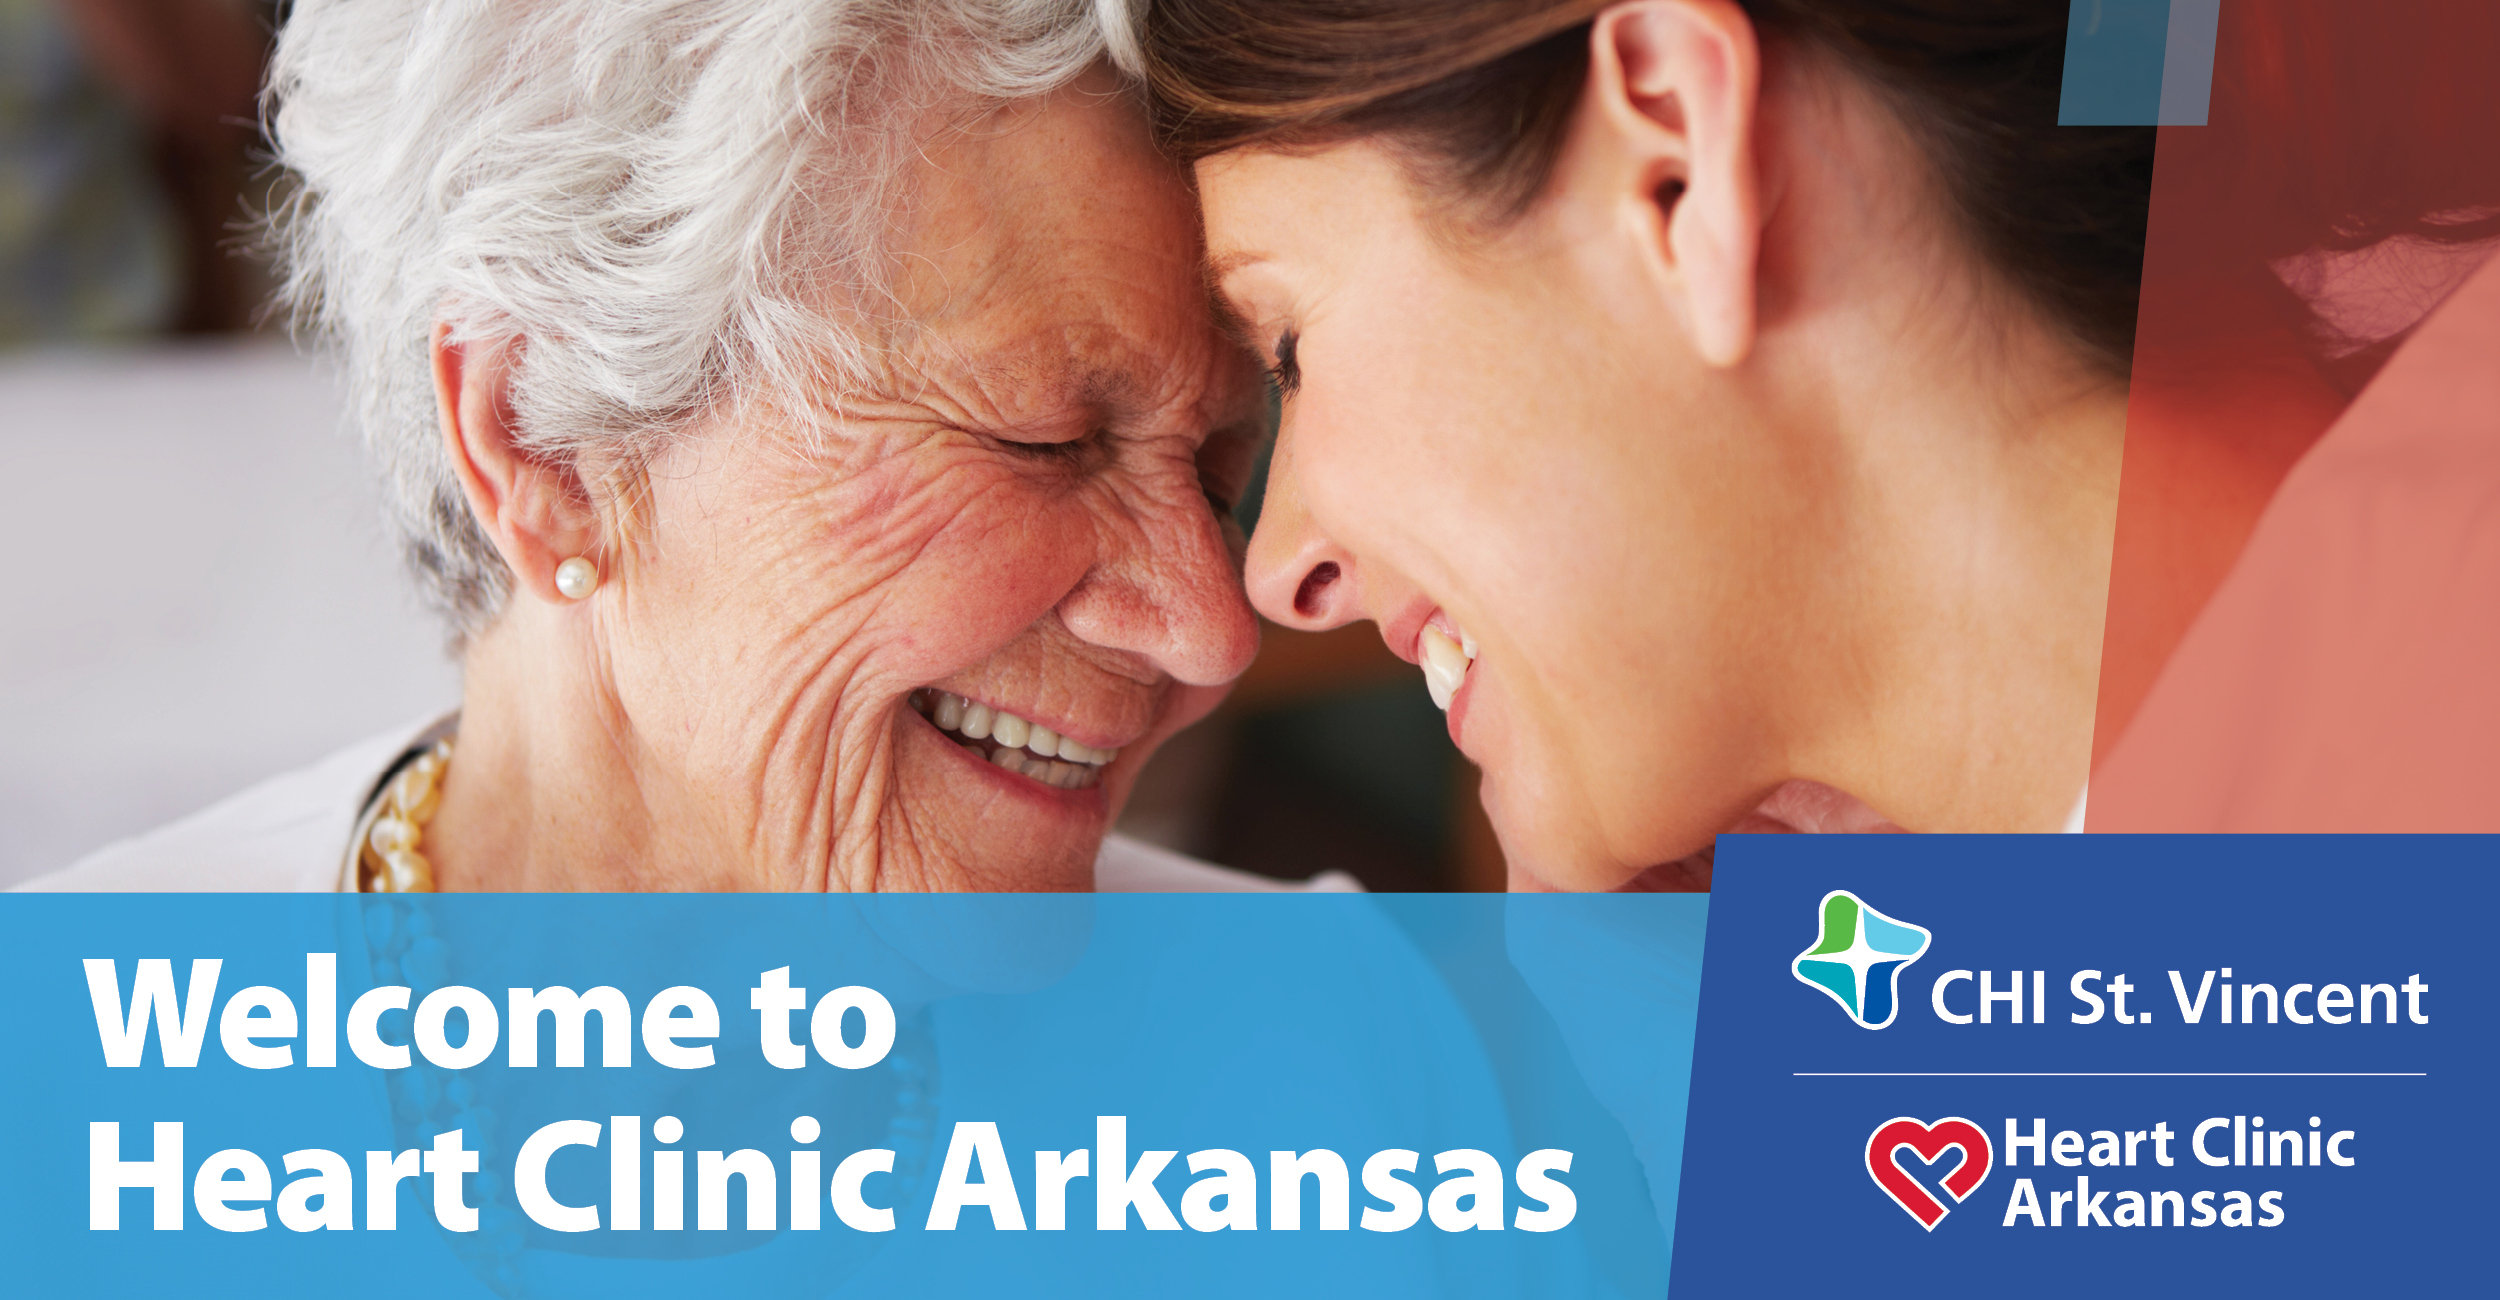 Heart Clinic Arkansas